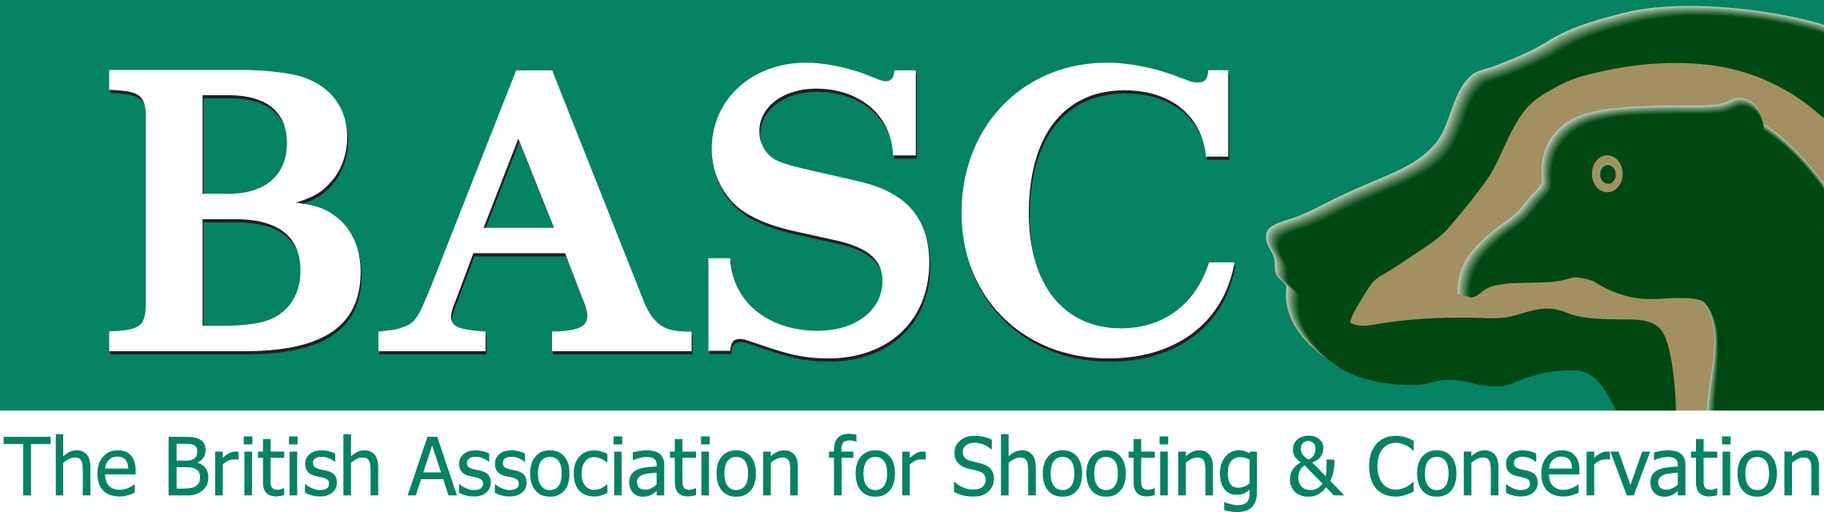 The British Association for Shooting and Conservation logo